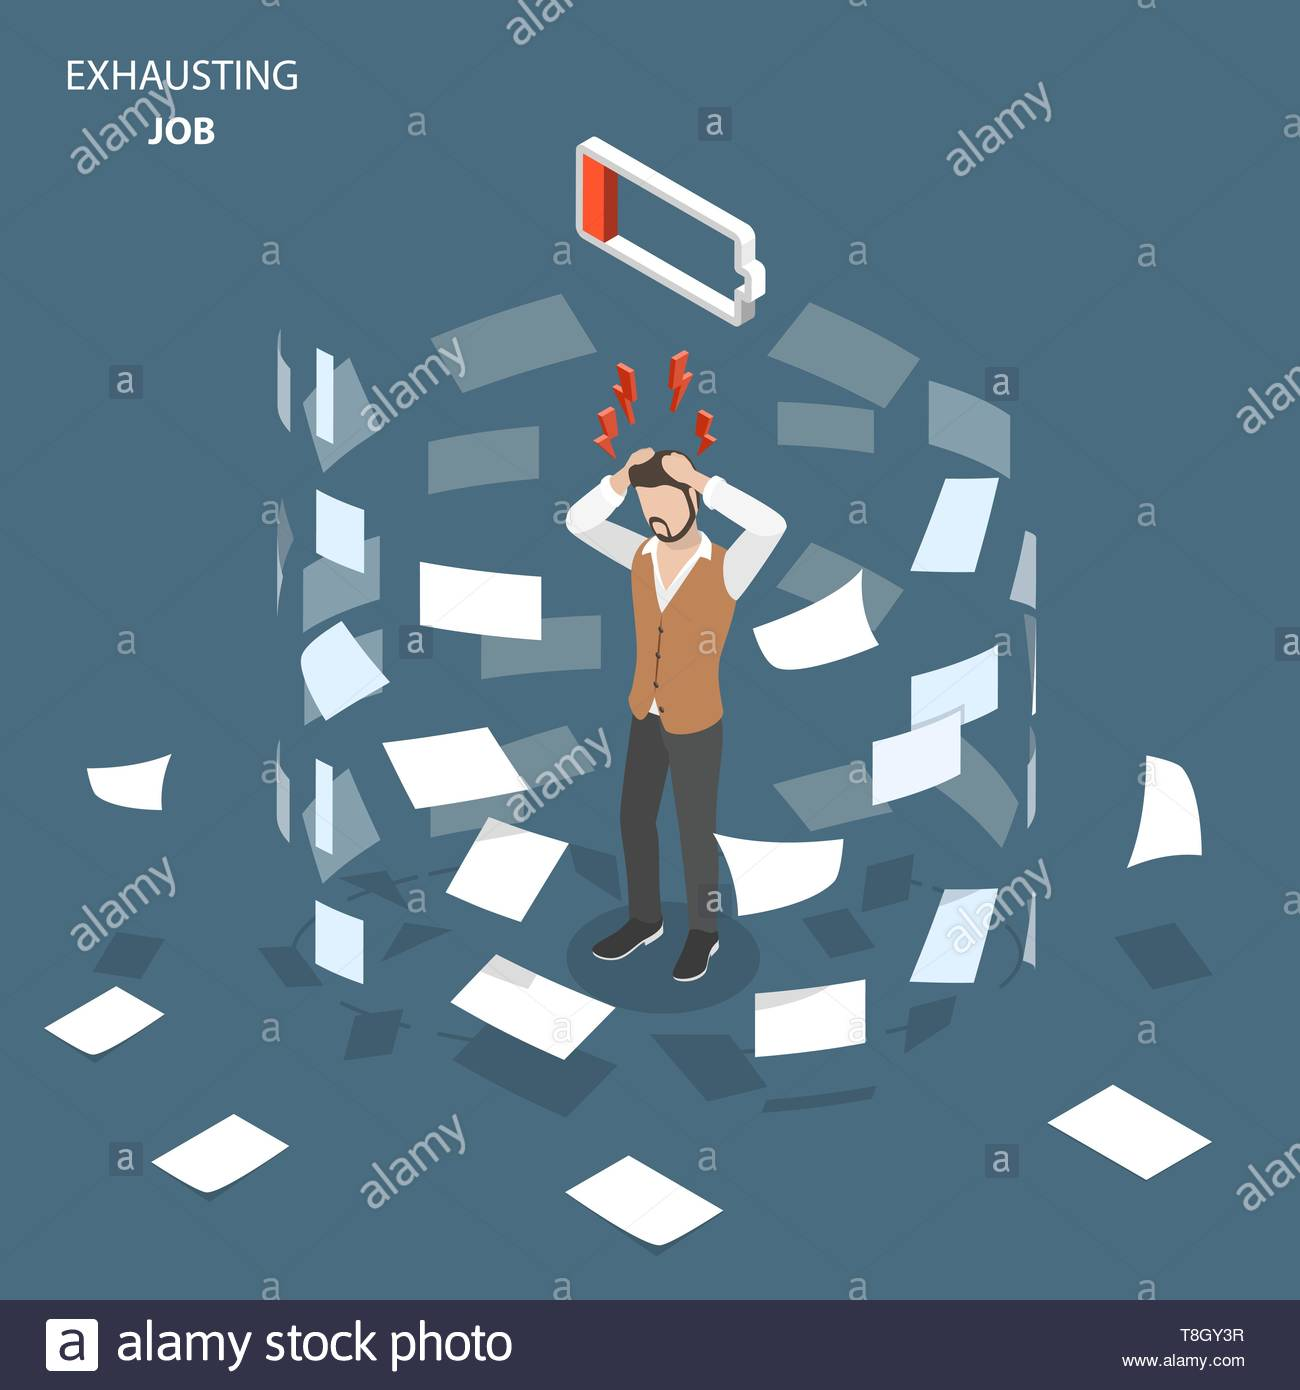 Exhausting job flat isometric vector concept. Man stands, holding his head, showing an fatigue and stress. Paper documents are whirling around him. - Stock Vector